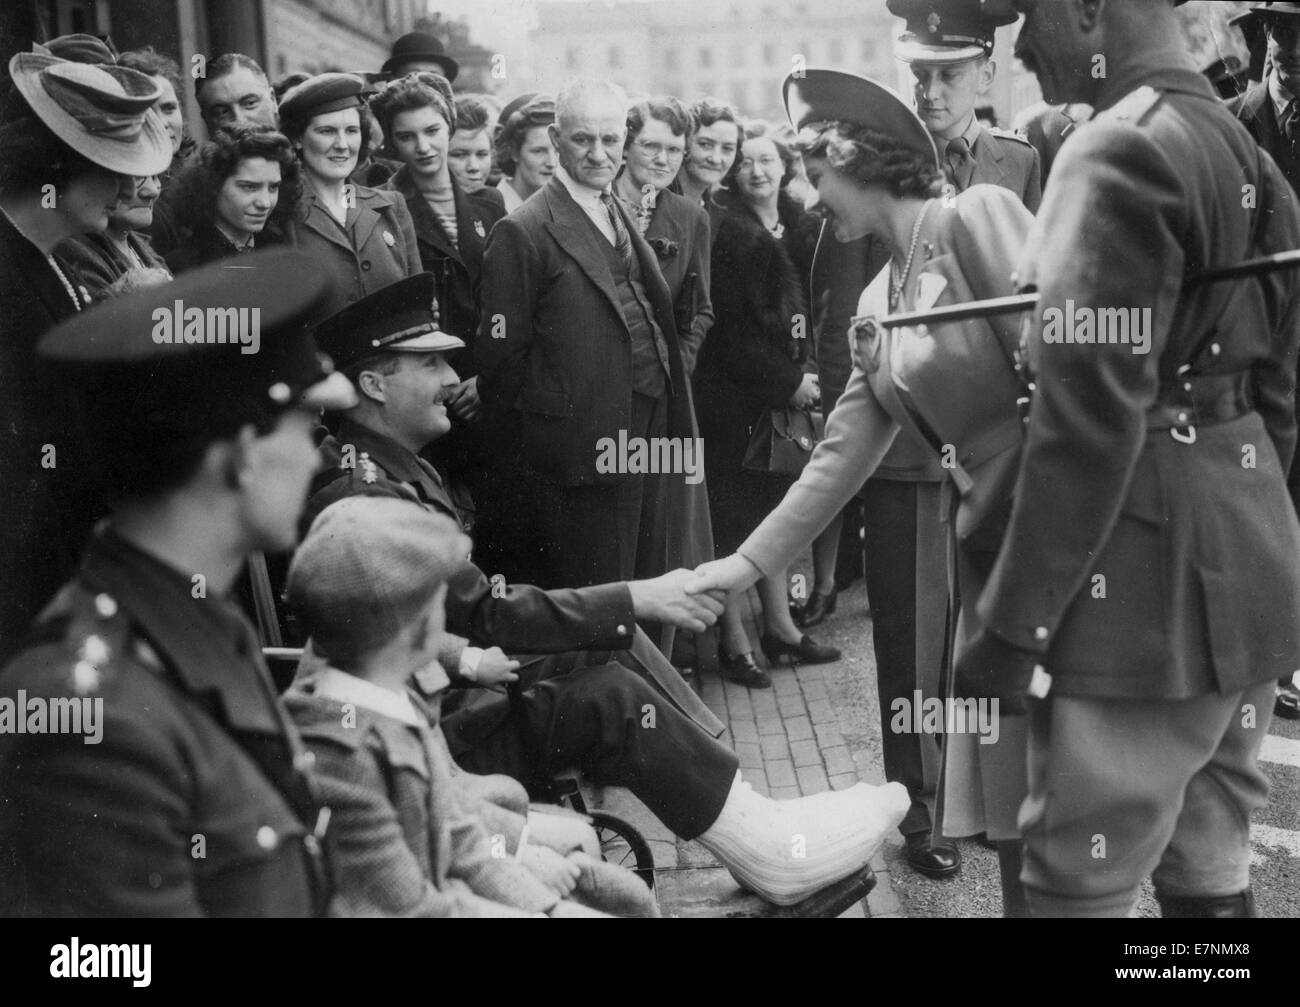 Princess Elizabeth greets wounded soldiers at the end of WW11 - Stock Image